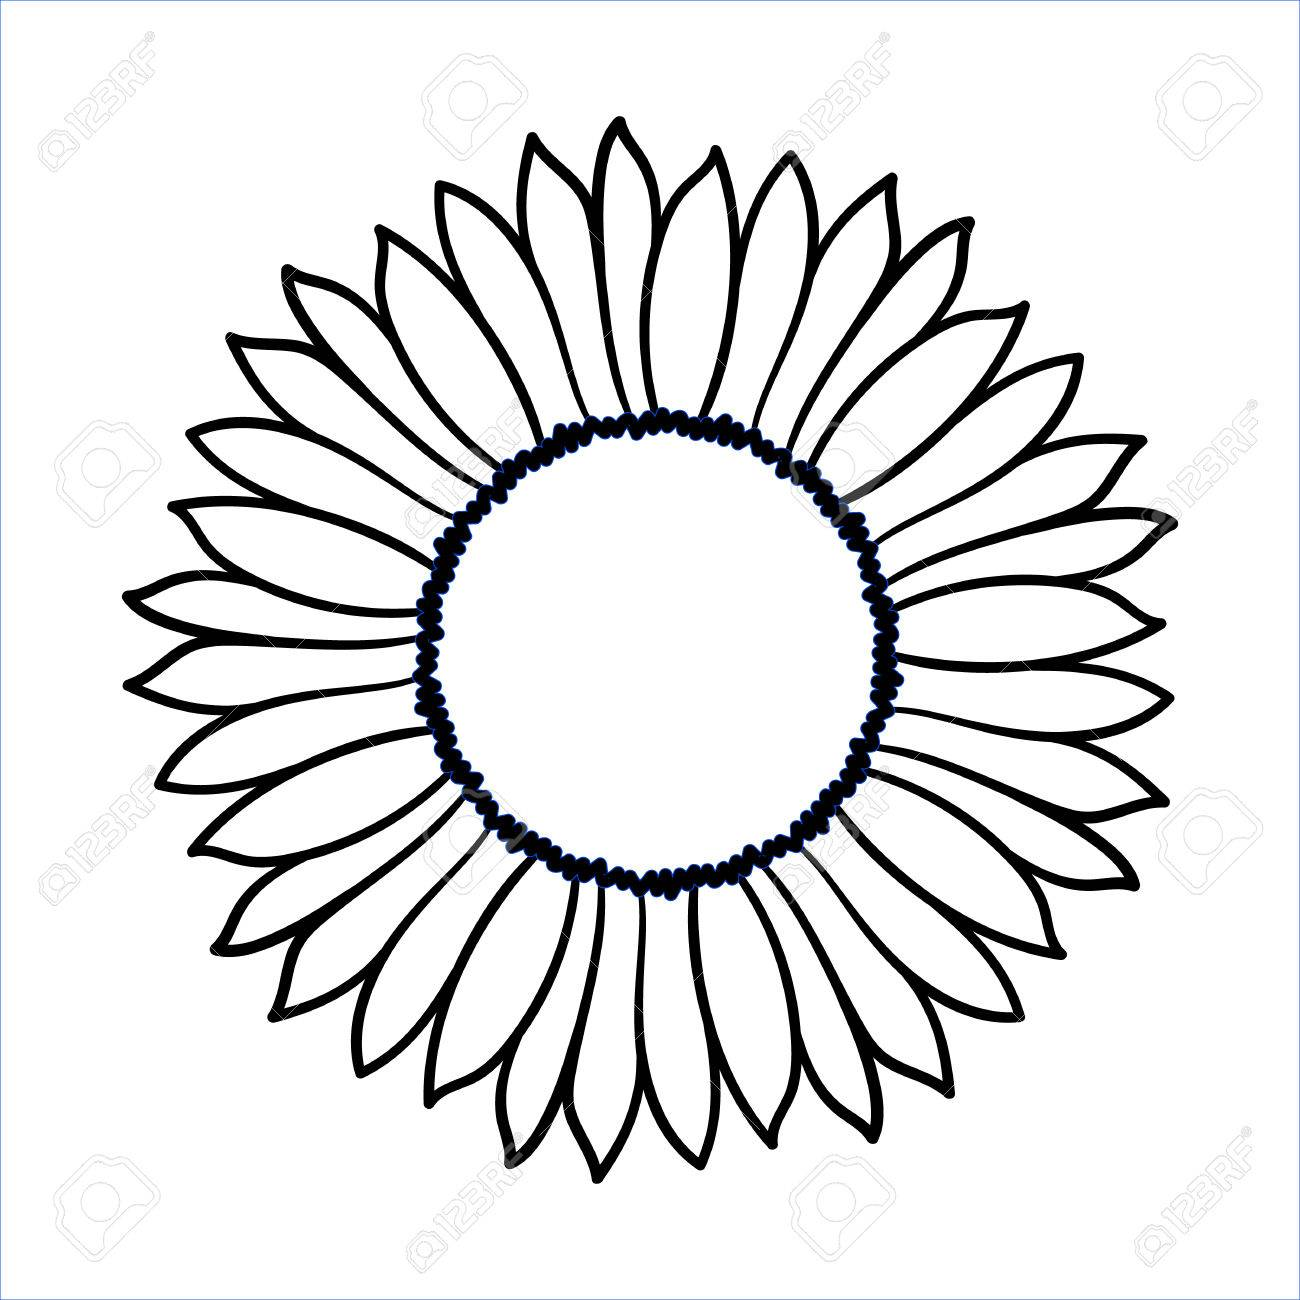 1300x1300 Vector Doodle Sunflower Illustration. Simple Hand Drawn Icon